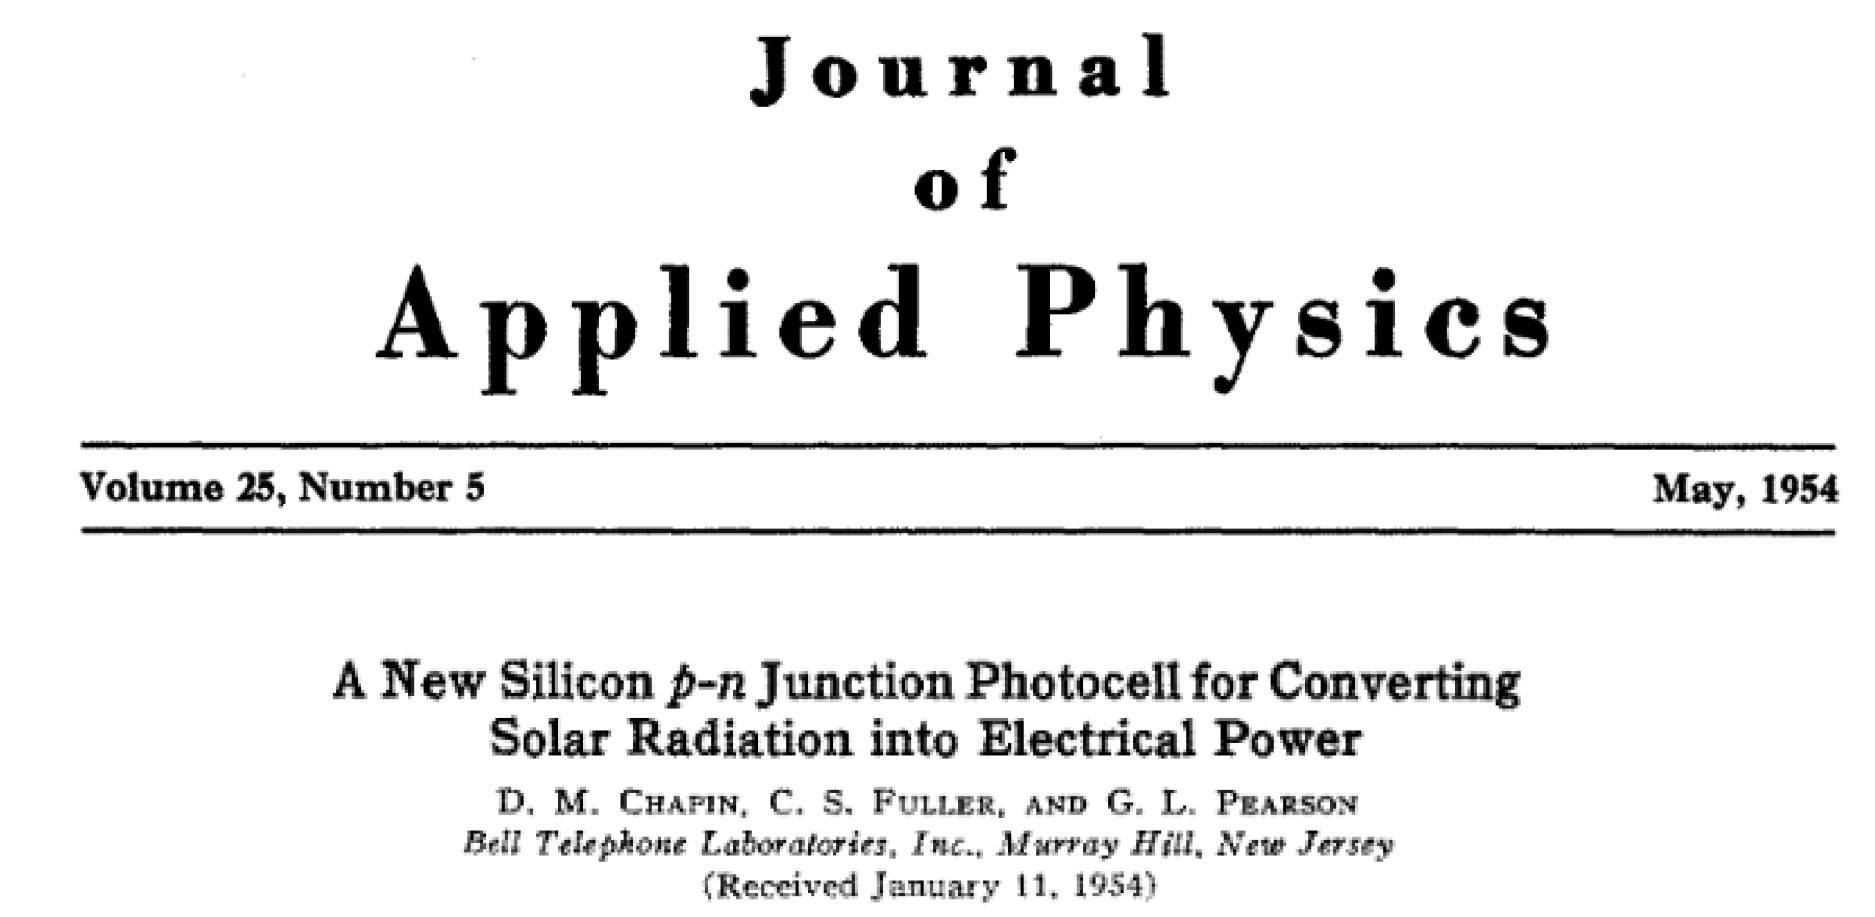 The title of a paper from the Journal of Applied Physics on converting solar radiation into electrical power, dated May 1954.